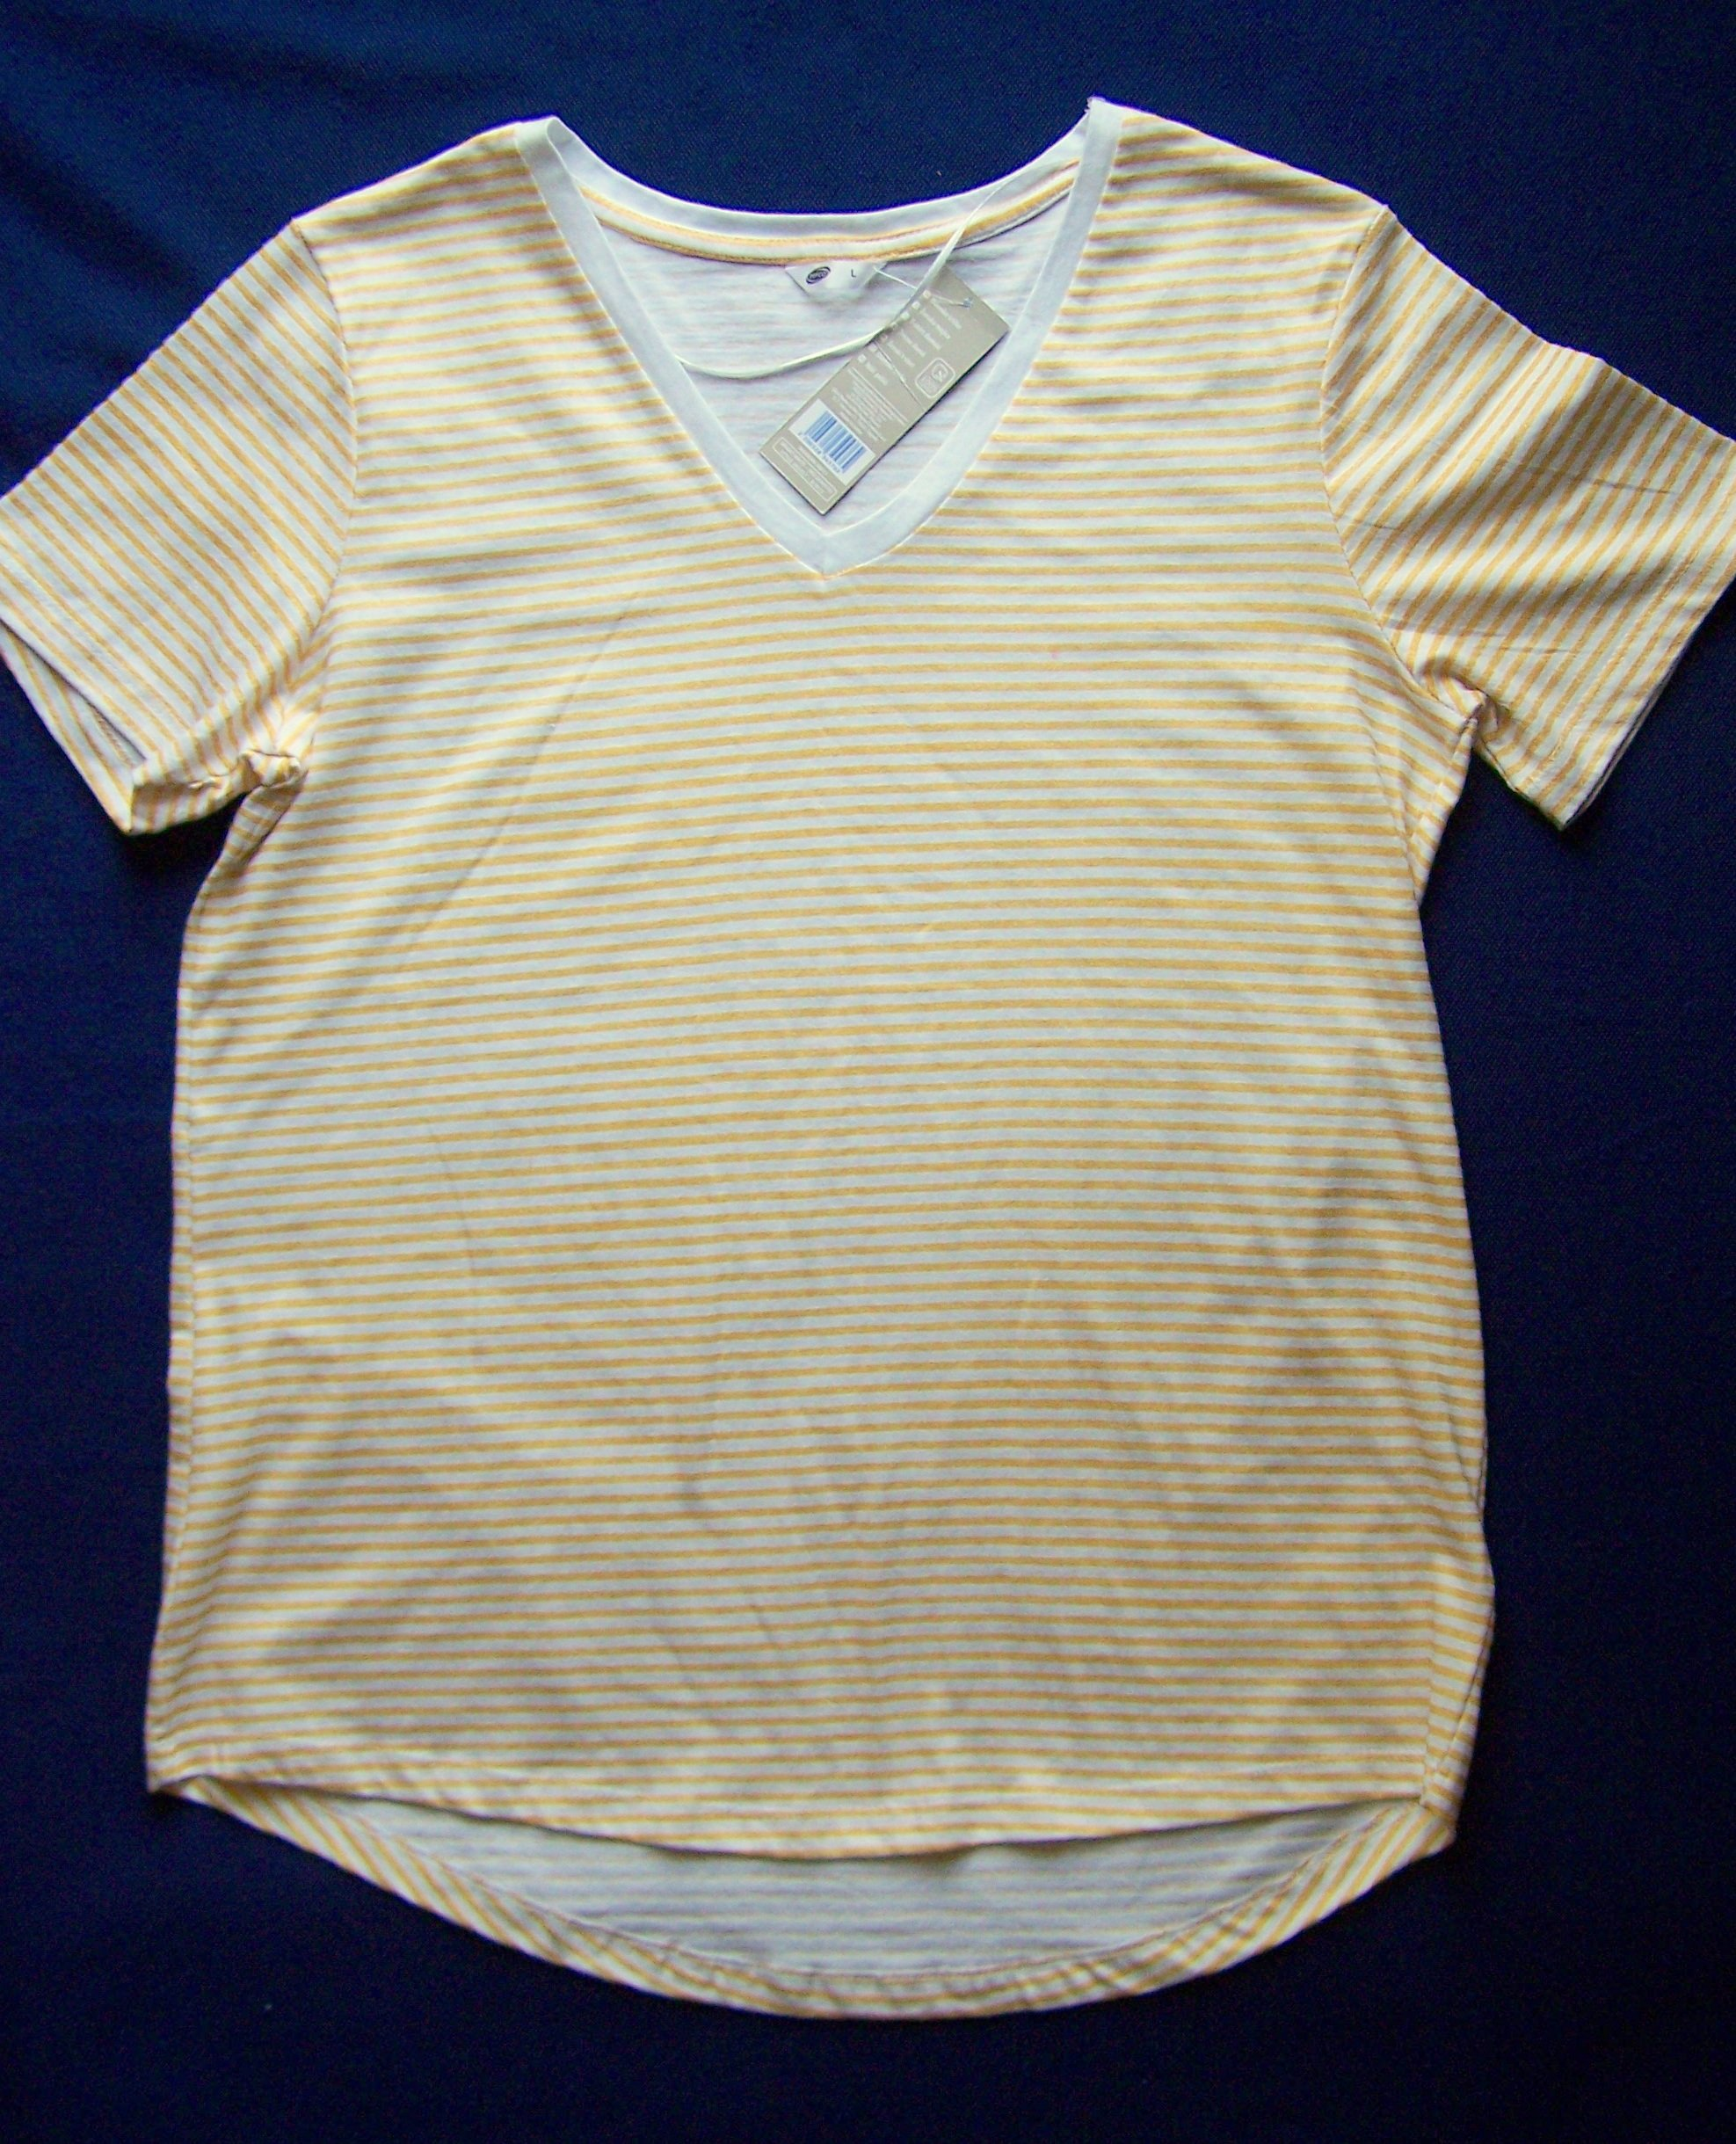 BLUZKA DAMSKA T-SHIRT GOLD 100% COTTON L PEPCO